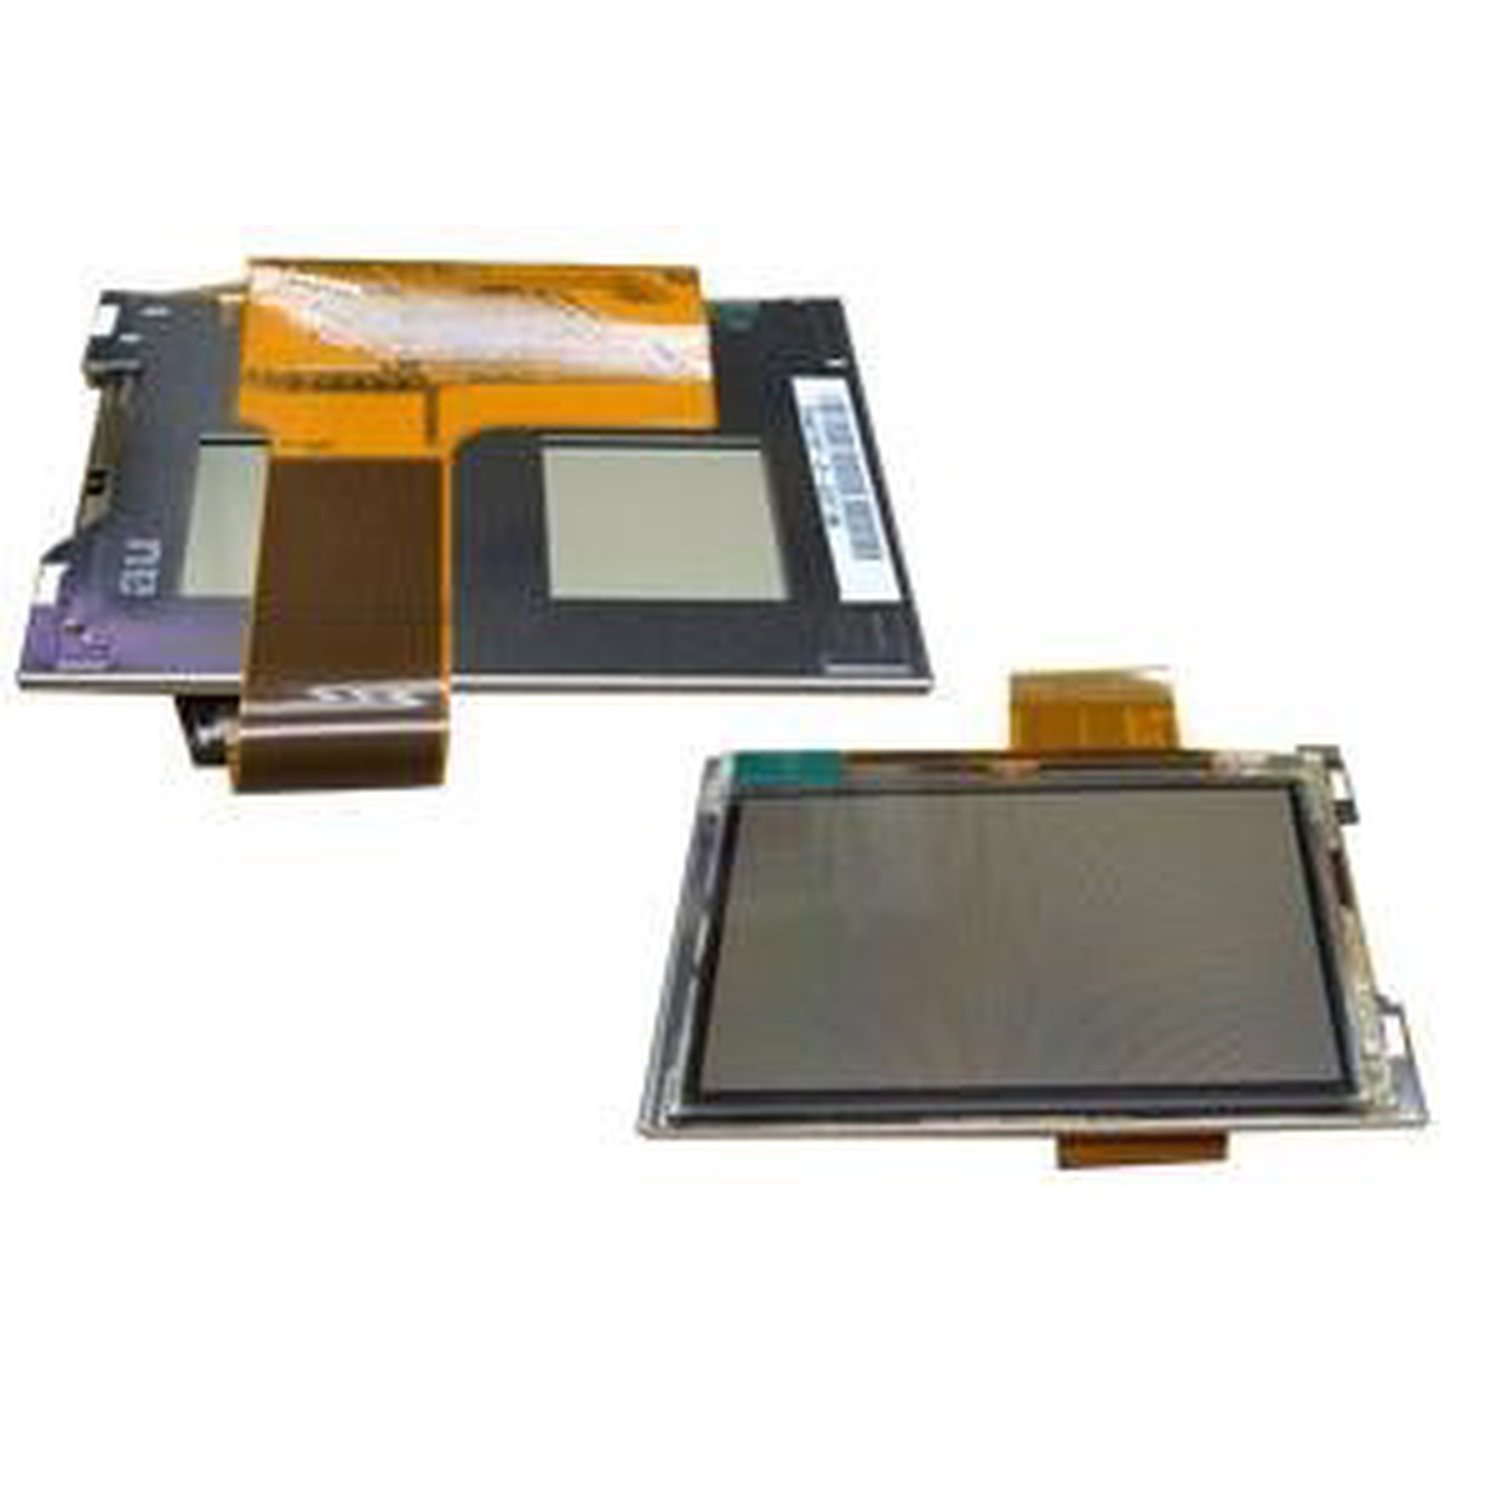 LCD SCREEN FOR GBA * NEW *